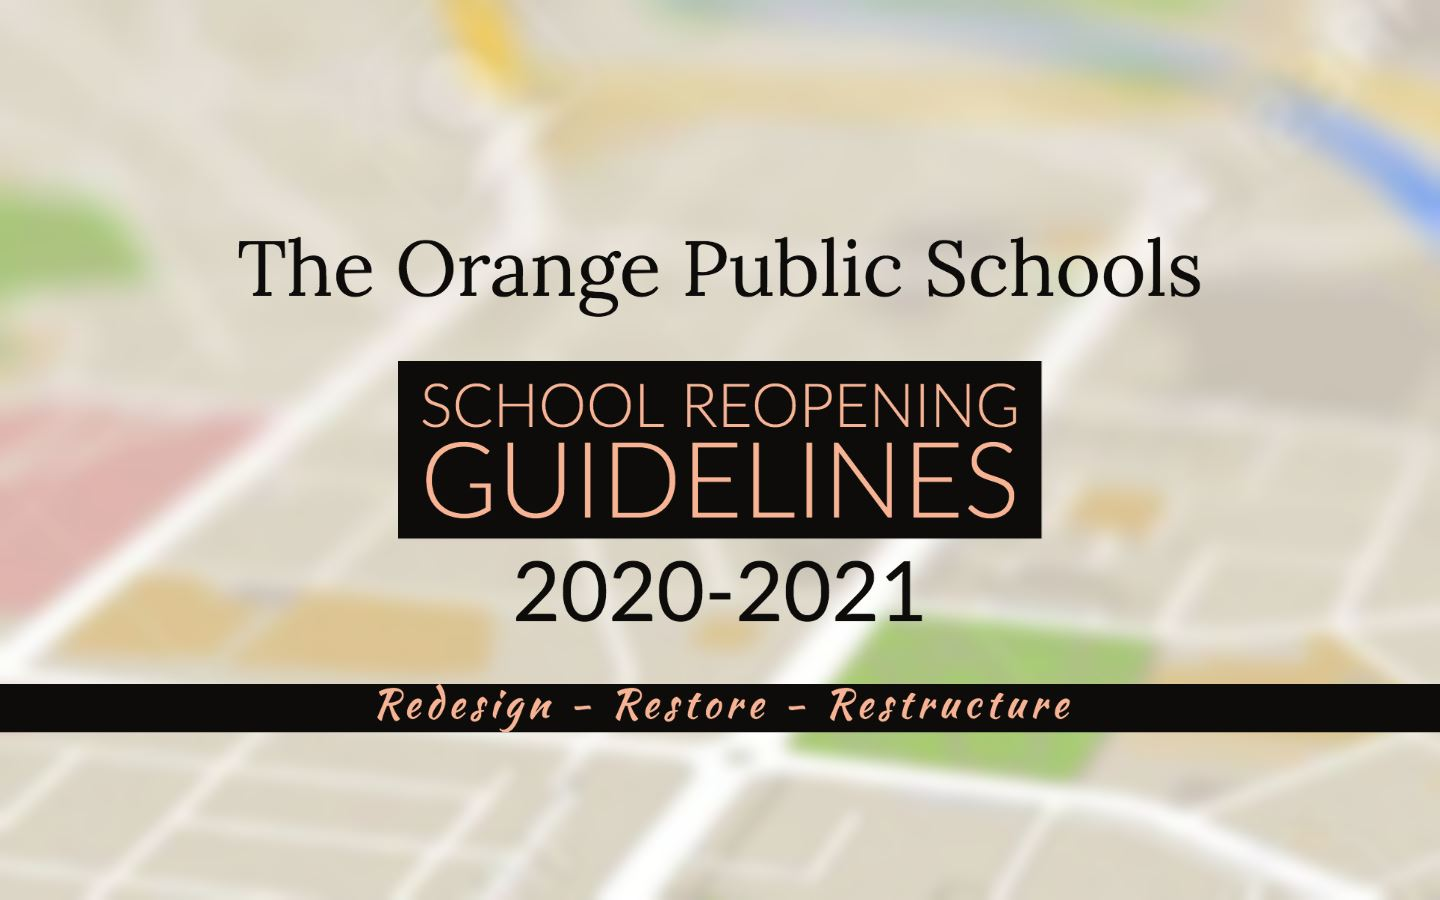 Orange Public Schools Reopening Guidelines